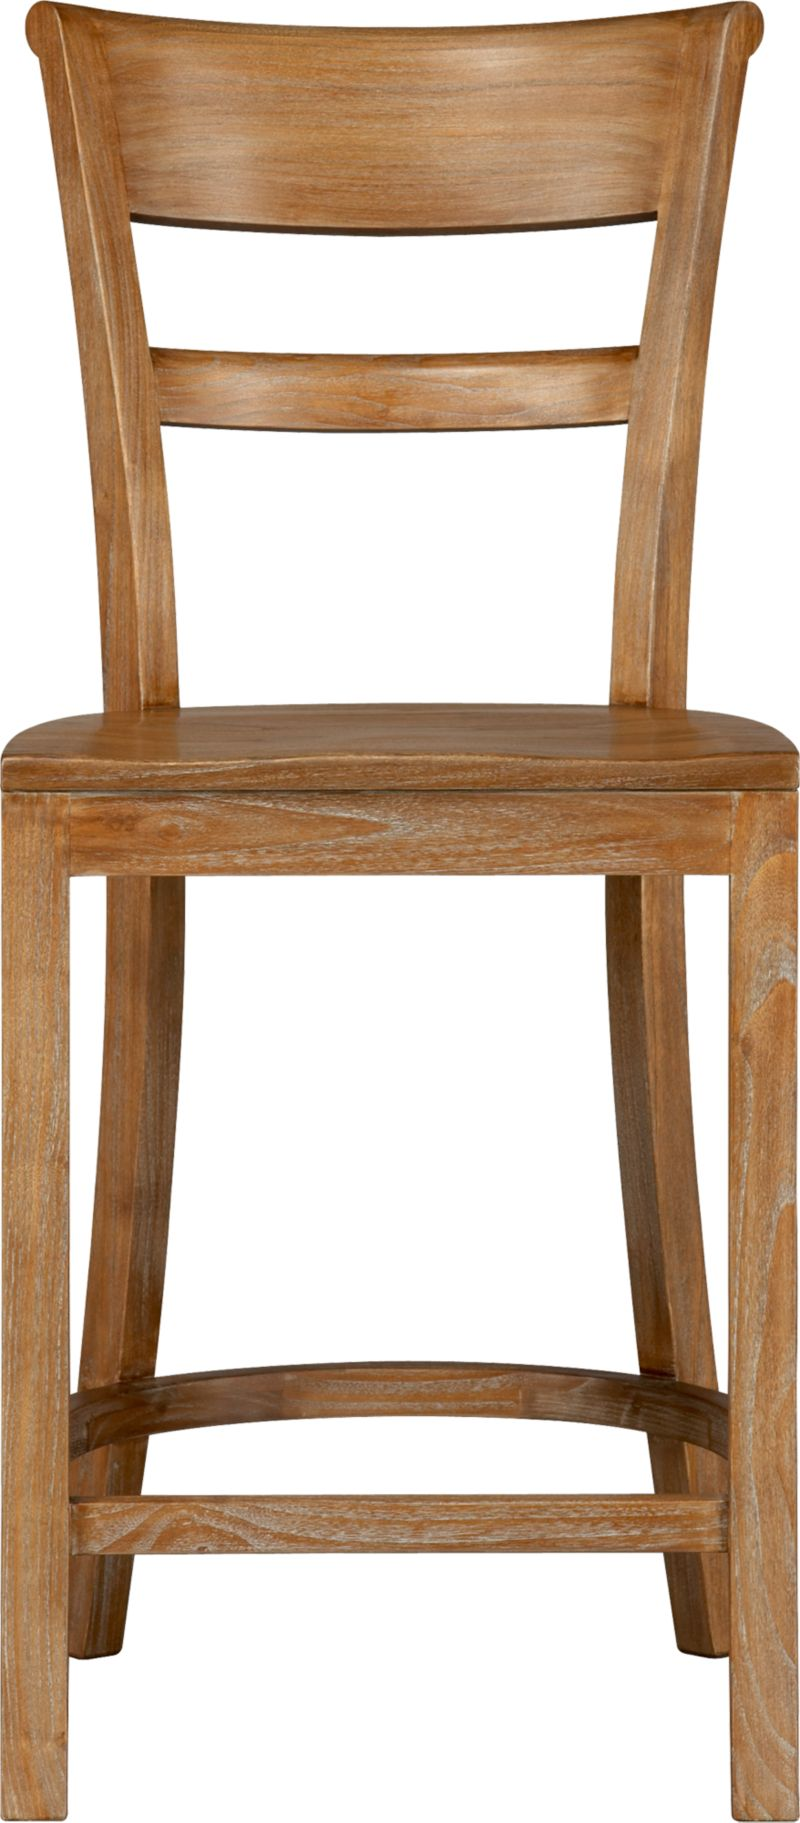 "Solid tropical sungkai wood seating pulls up to counter with ease and elegance. Barstool has graceful rolled back and comfortable contours to the seat. A soft-sheen lacquer adds a finishing detail.<br /><br /><NEWTAG/><ul><li>Solid tropical sungkai wood</li><li>Grey wash, clear protective lacquer finish</li><li>Contoured seat</li><li>24""H seat sized for counters</li></ul>"